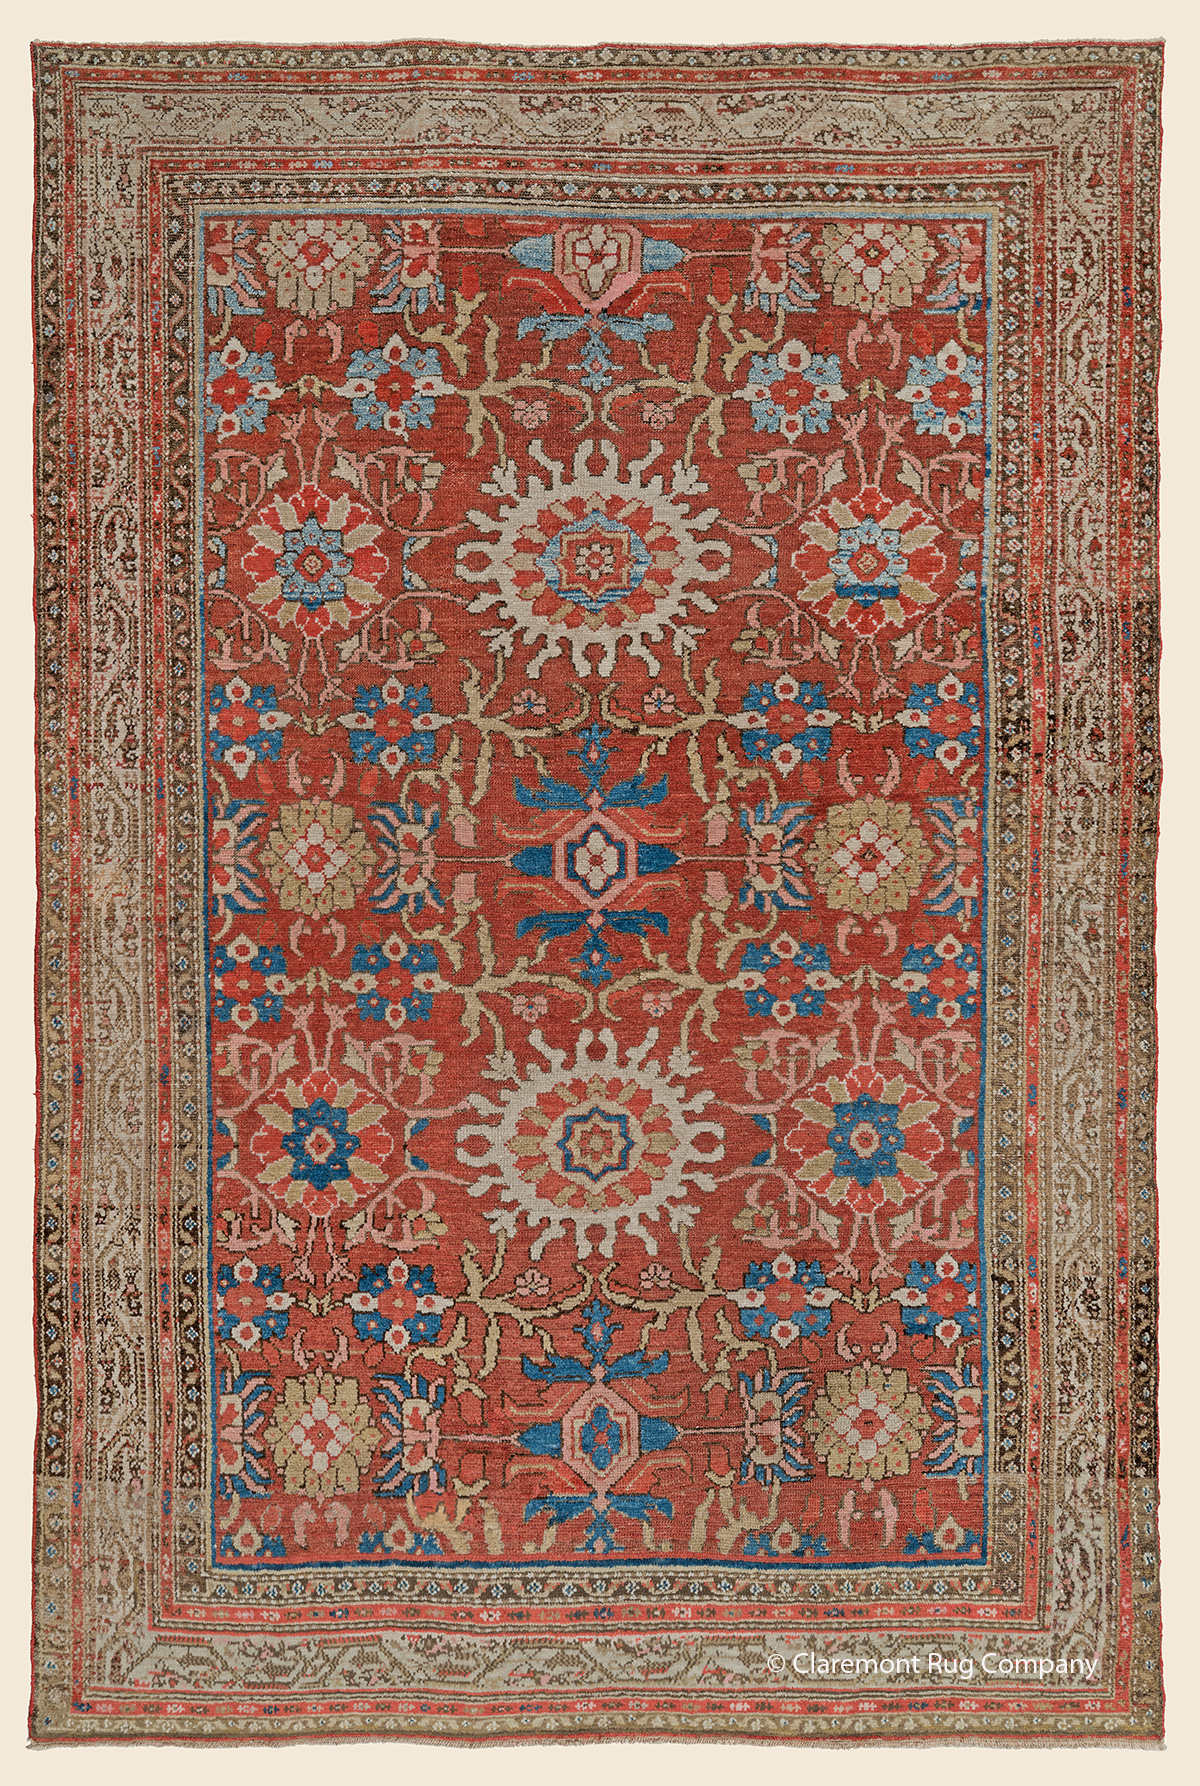 Circa 1910 Antique Persian Hamadan carpet with repeating Harshang flowerhead pattern 5ft x 8ft